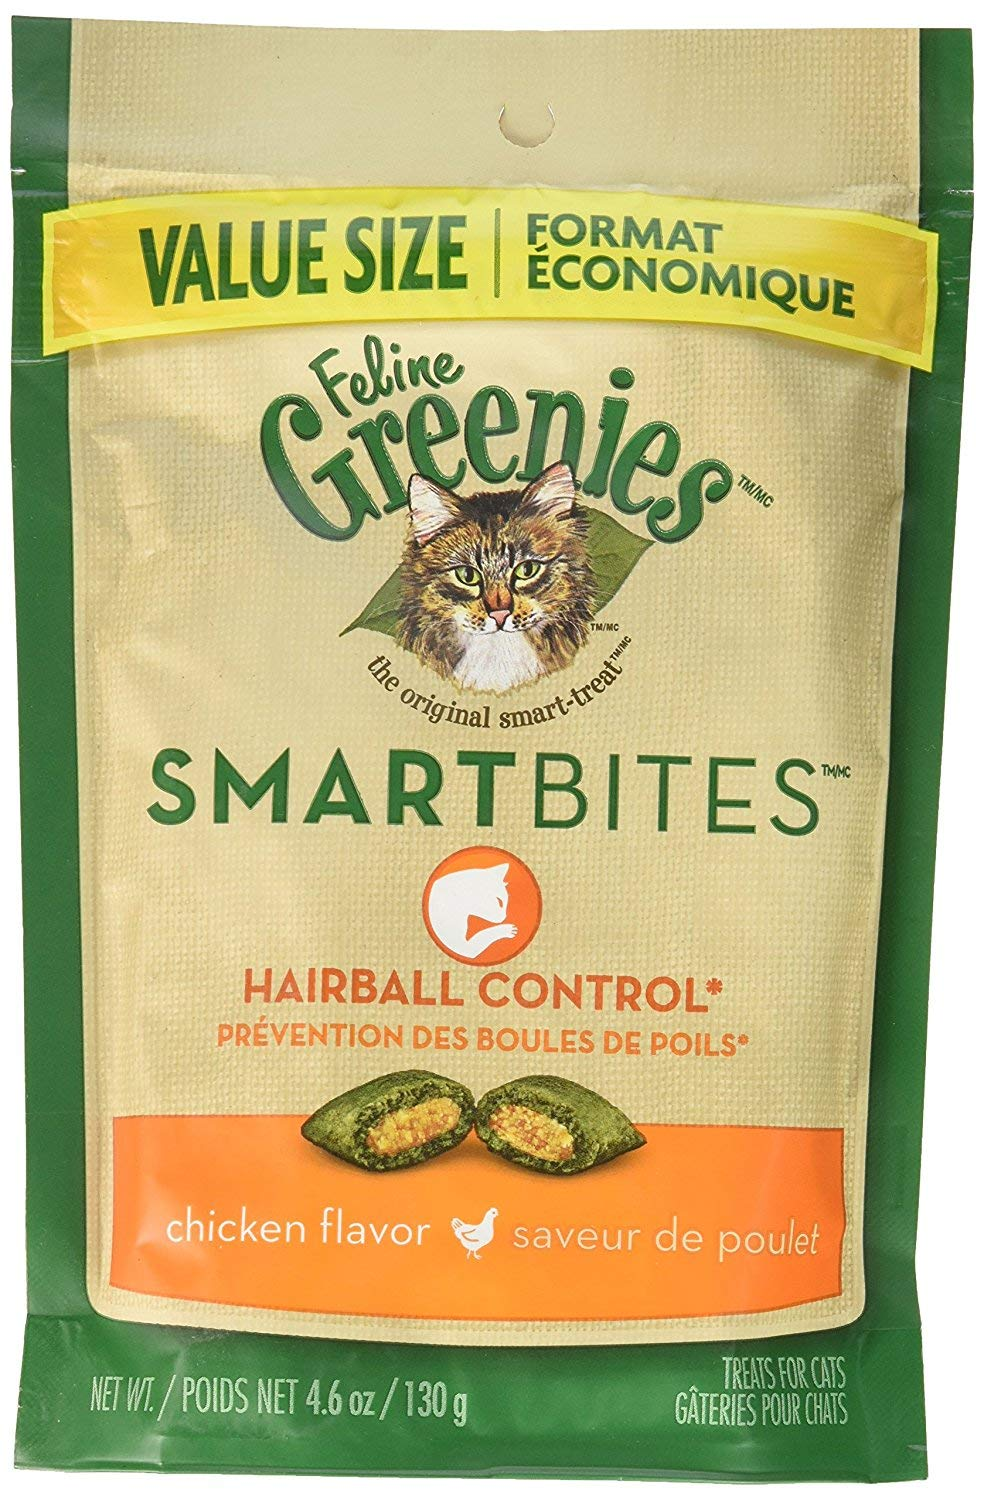 Greenies (6 Pack) Feline SMARTBITES Hairball Control, Chicken Flavor (4.6 oz Per Pack) by Greenies